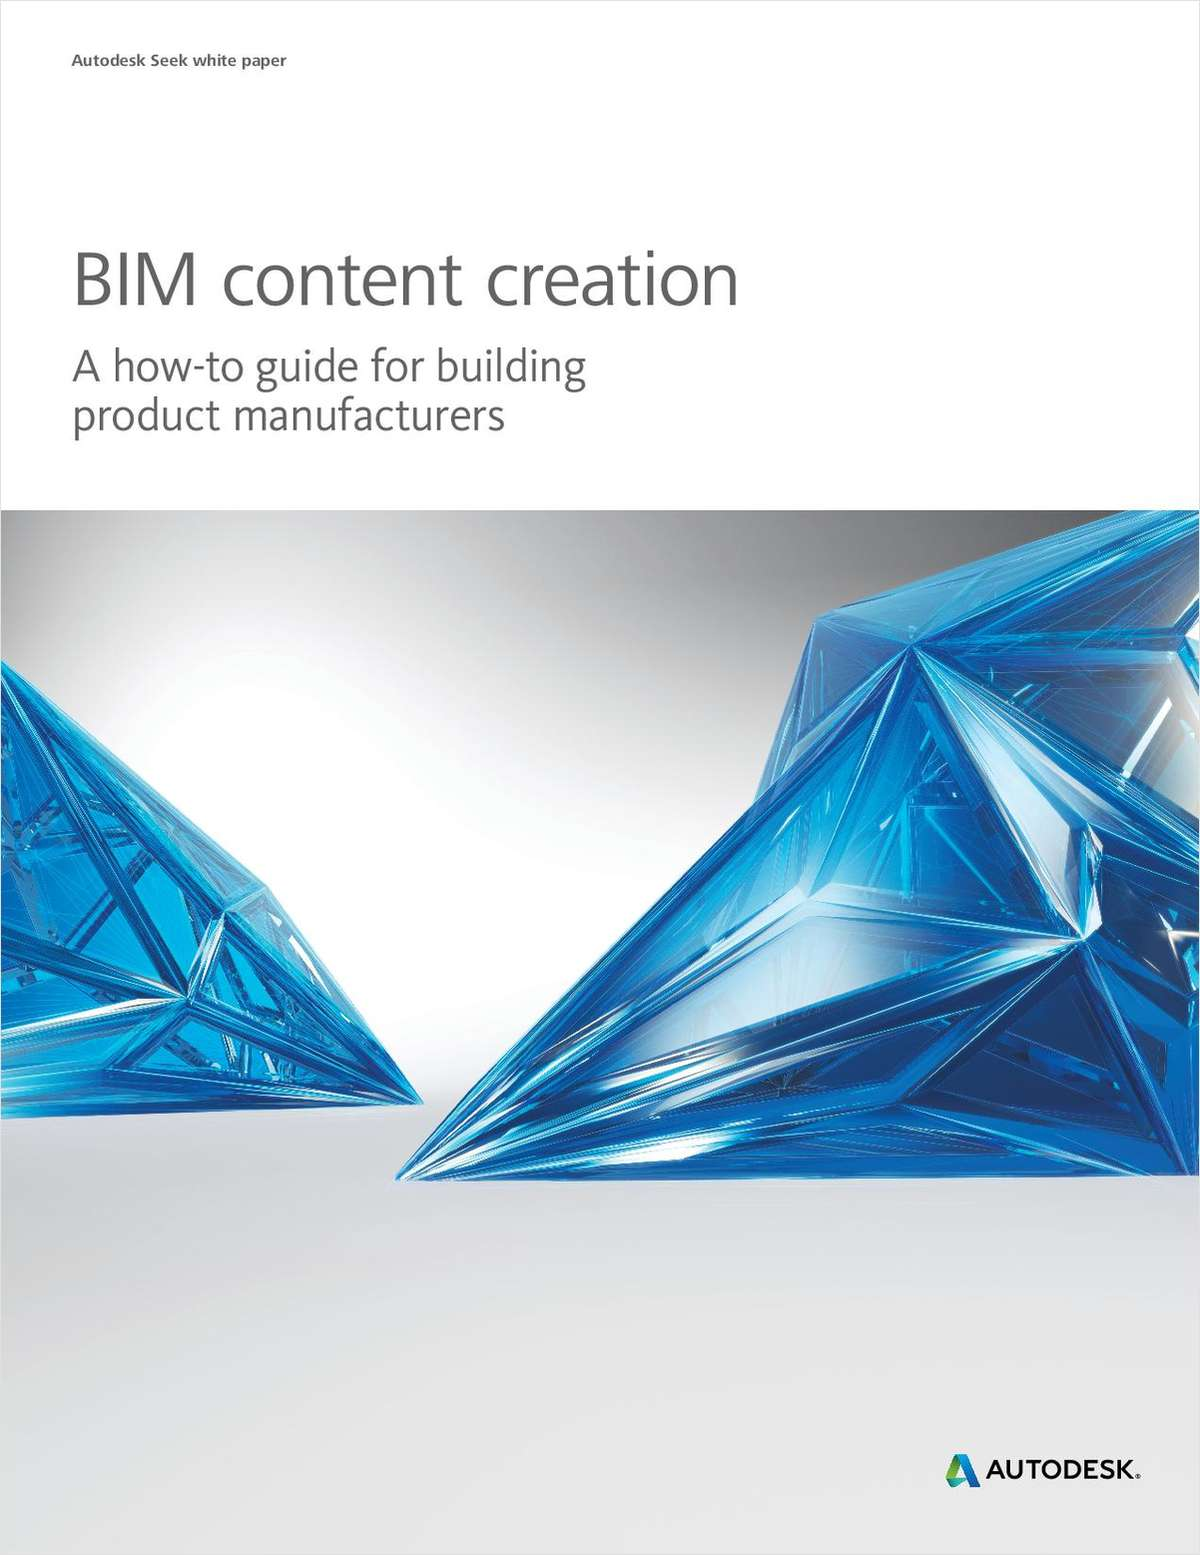 BIM Content Creation for Building Product Manufacturers